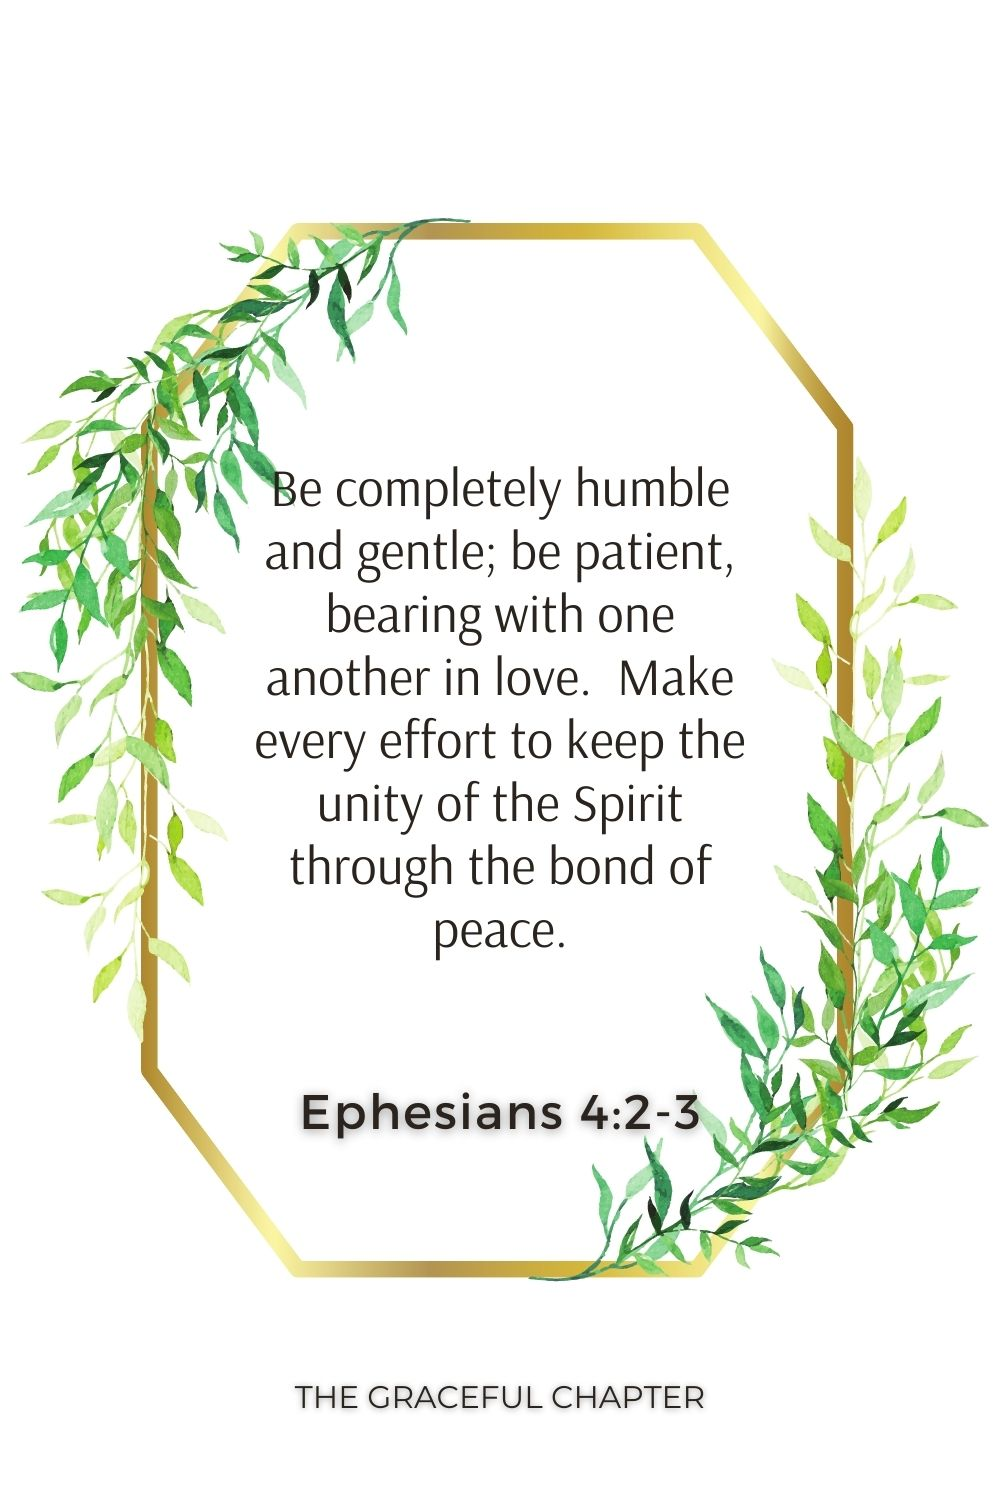 Be completely humble and gentle; be patient, bearing with one another in love.  Make every effort to keep the unity of the Spirit through the bond of peace. Ephesians 4:2-3